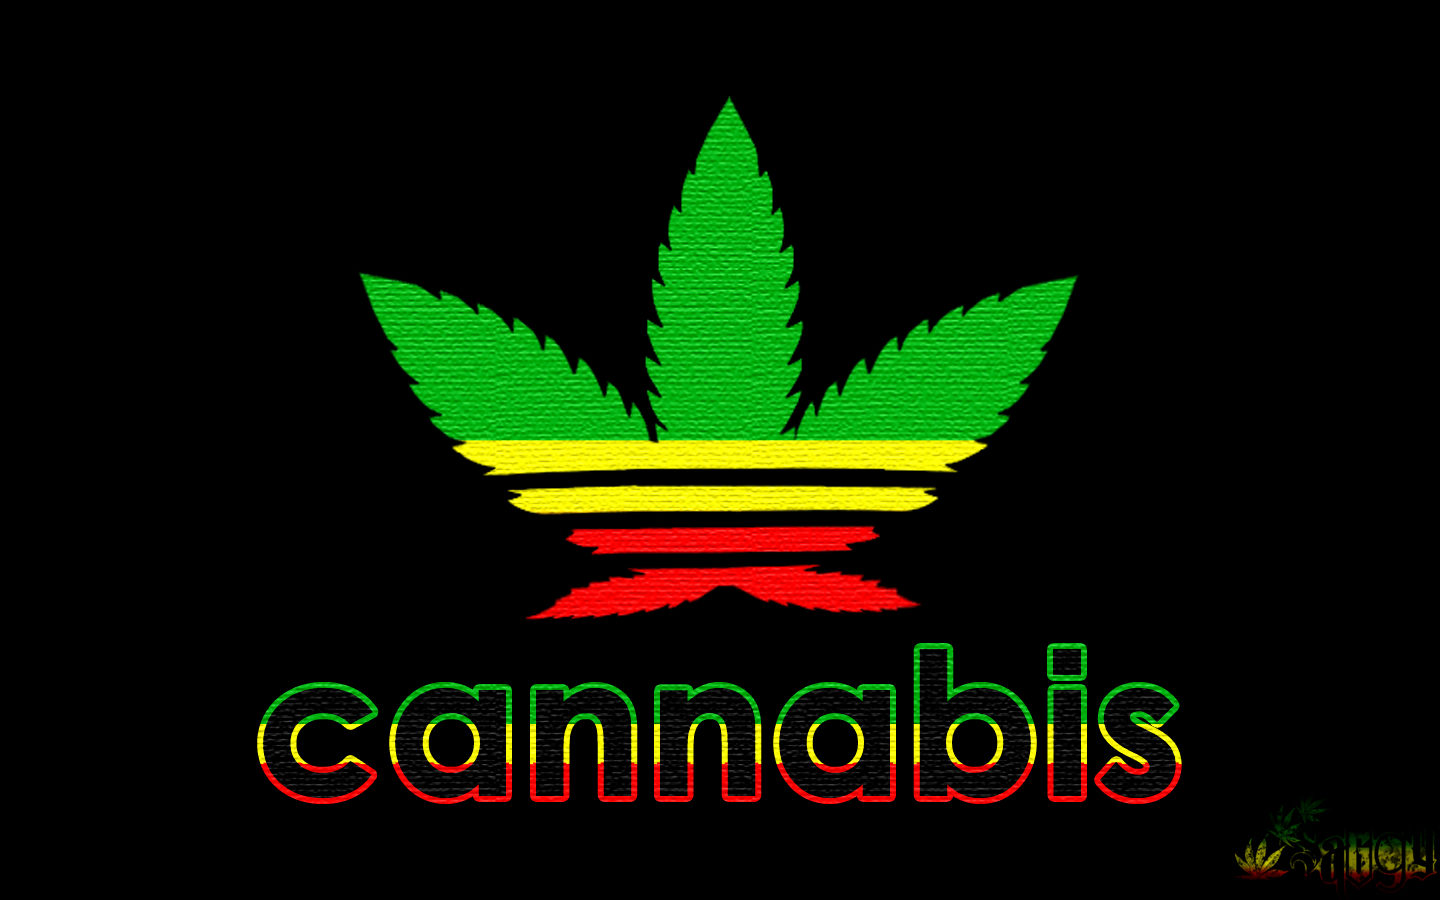 Cannabis Superstar II by HD Wallpaper